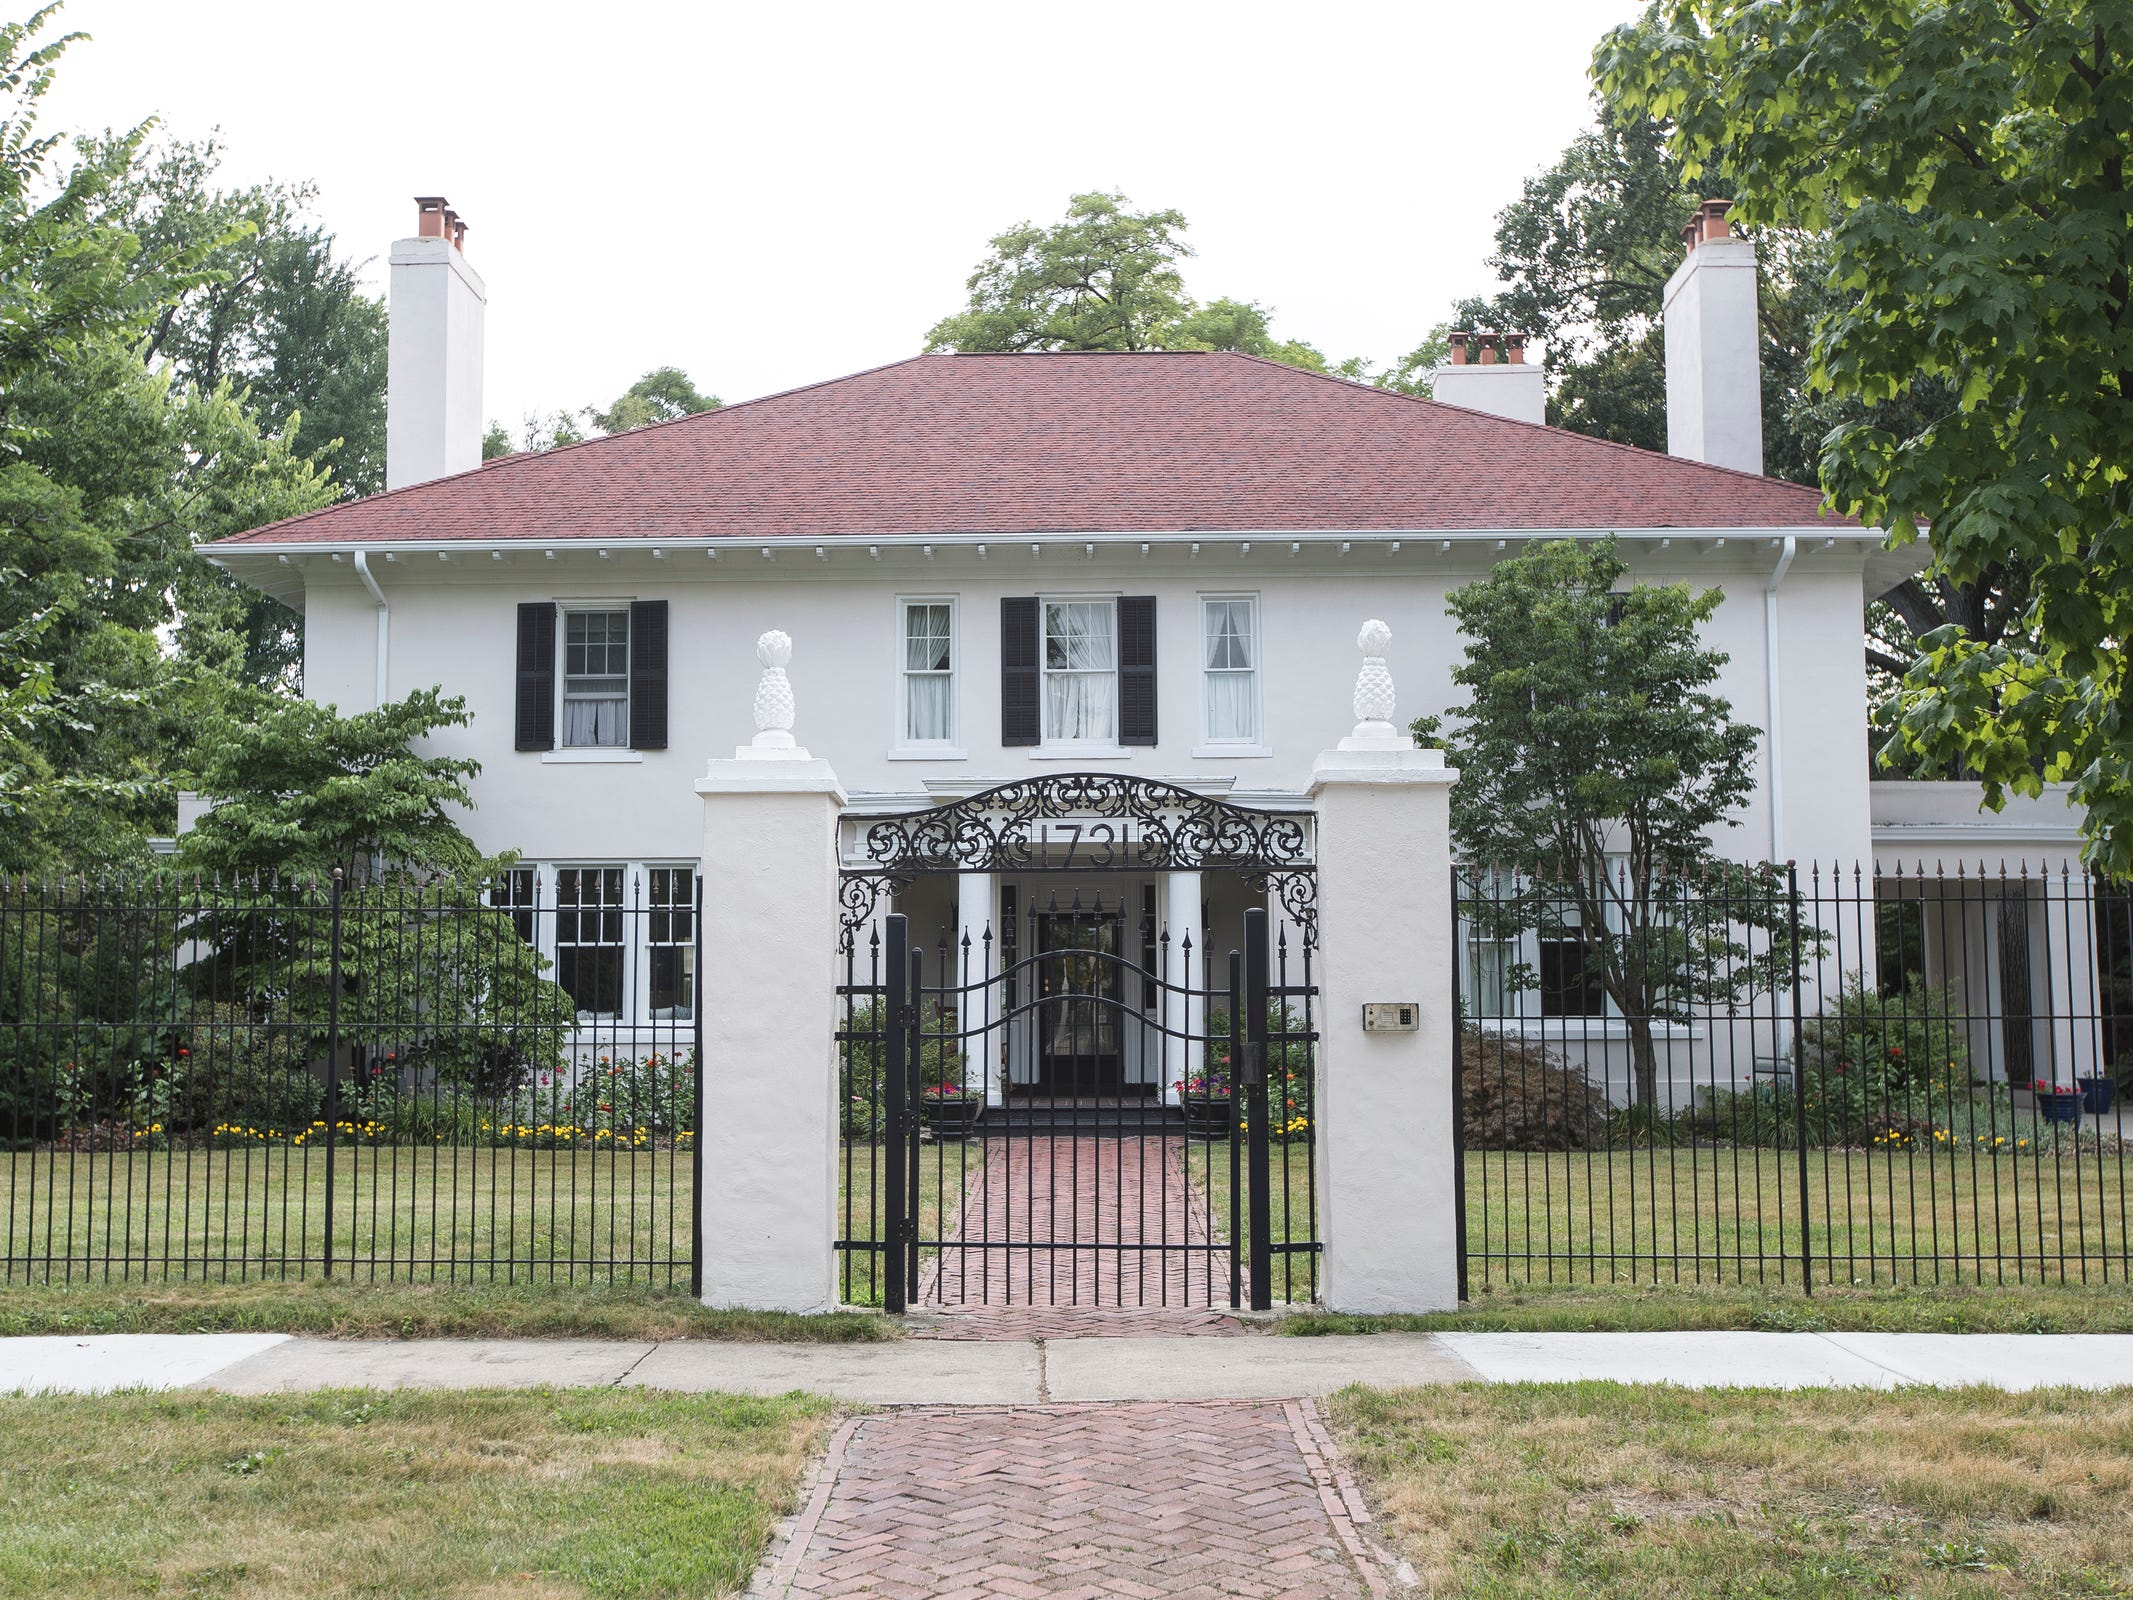 Musician Jack White is among former owners of this Indian Village home. It was designed by C. Howard Crane, who designed other grand homes as well as the Fox Theatre, Orchestra Hall and the Fillmore Detroit.